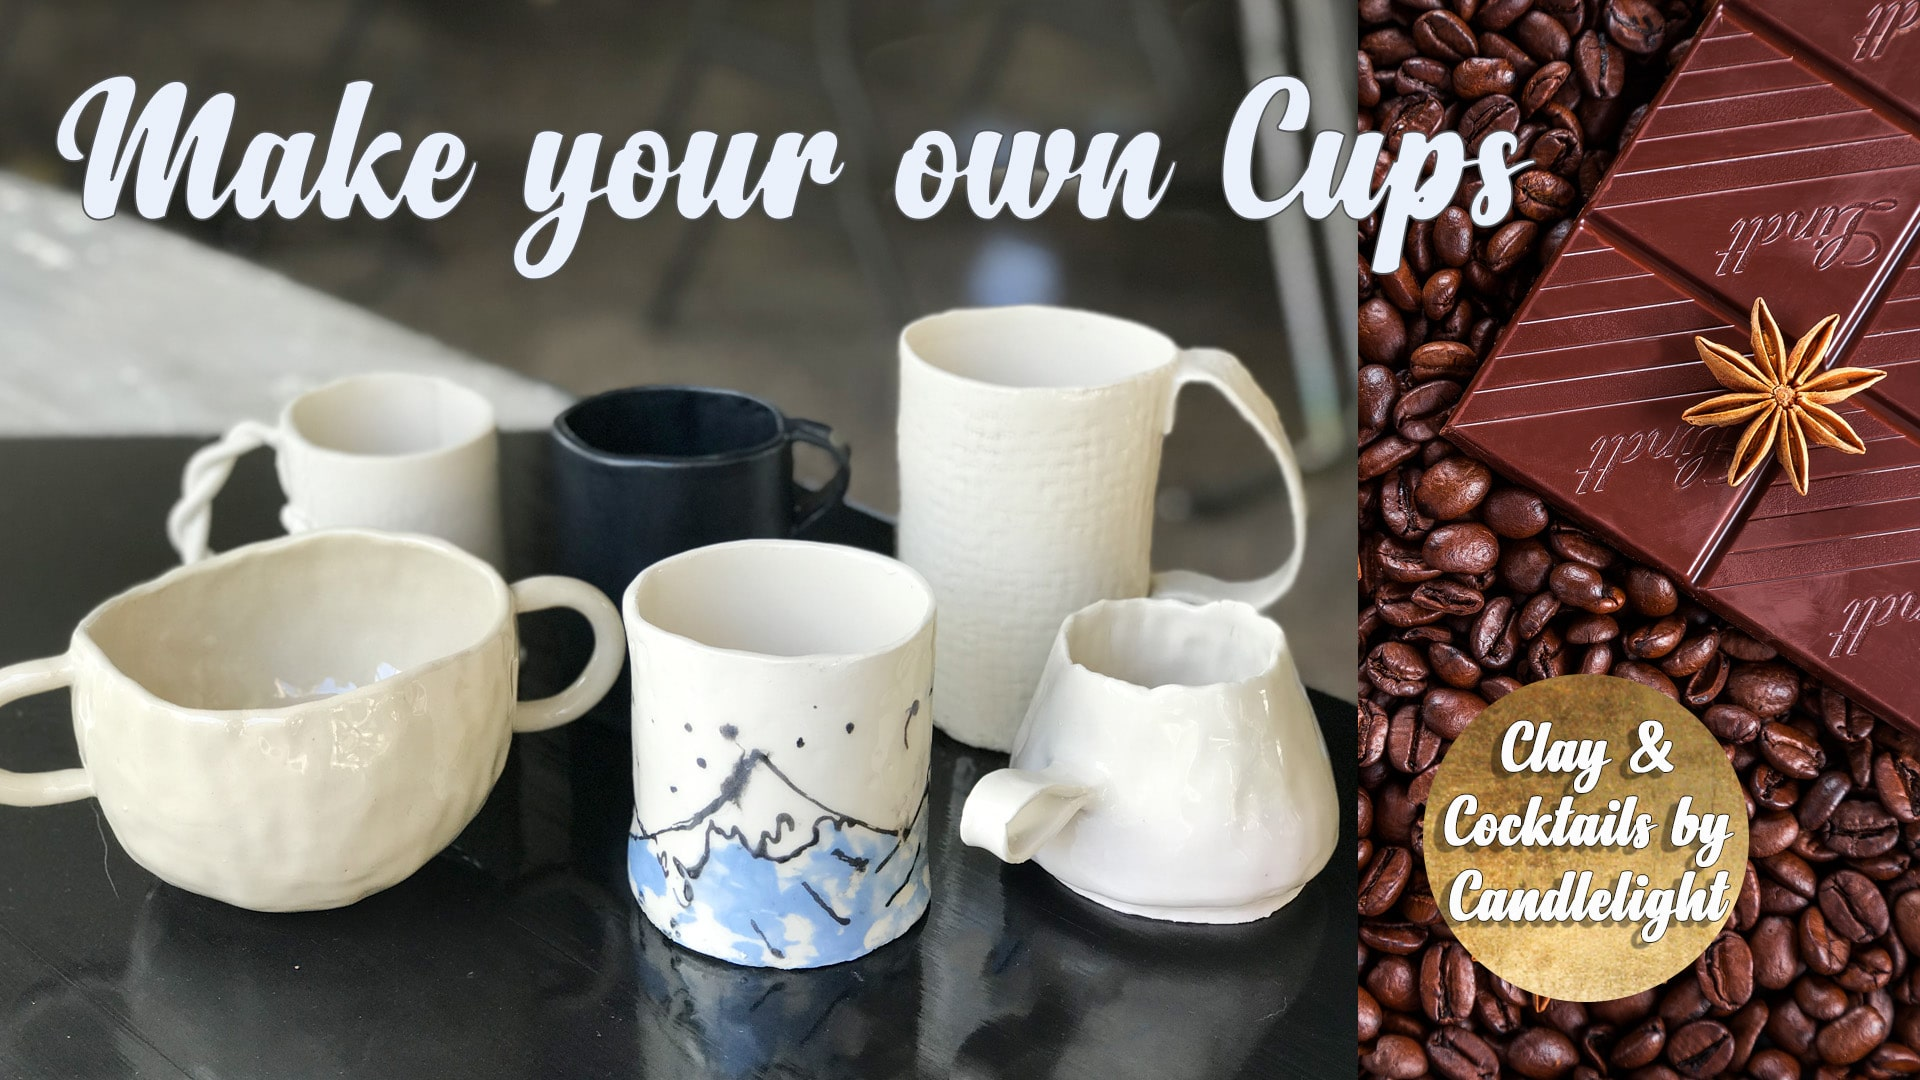 Pottery Class - Make Your Own Cups